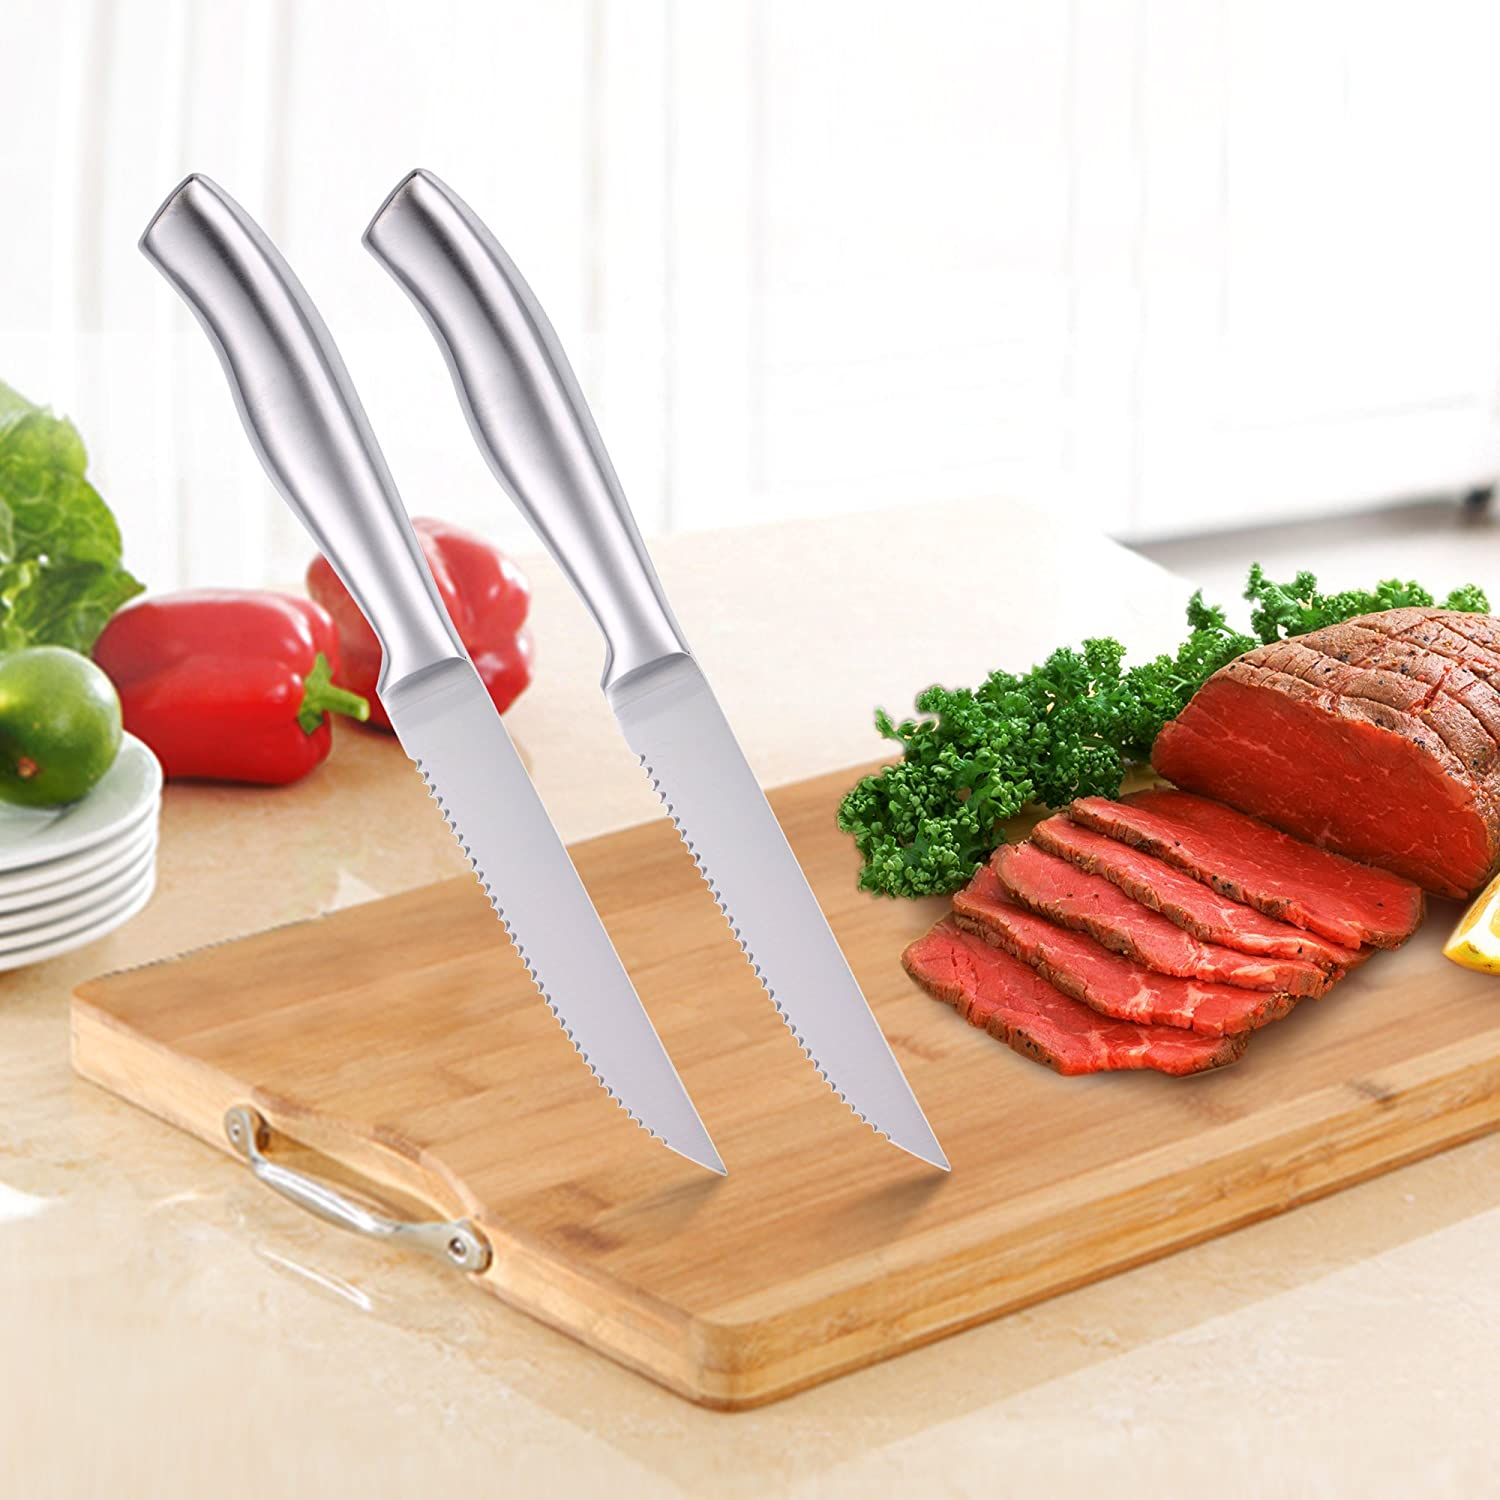 isheTao 6-Piece Steak Knives Set